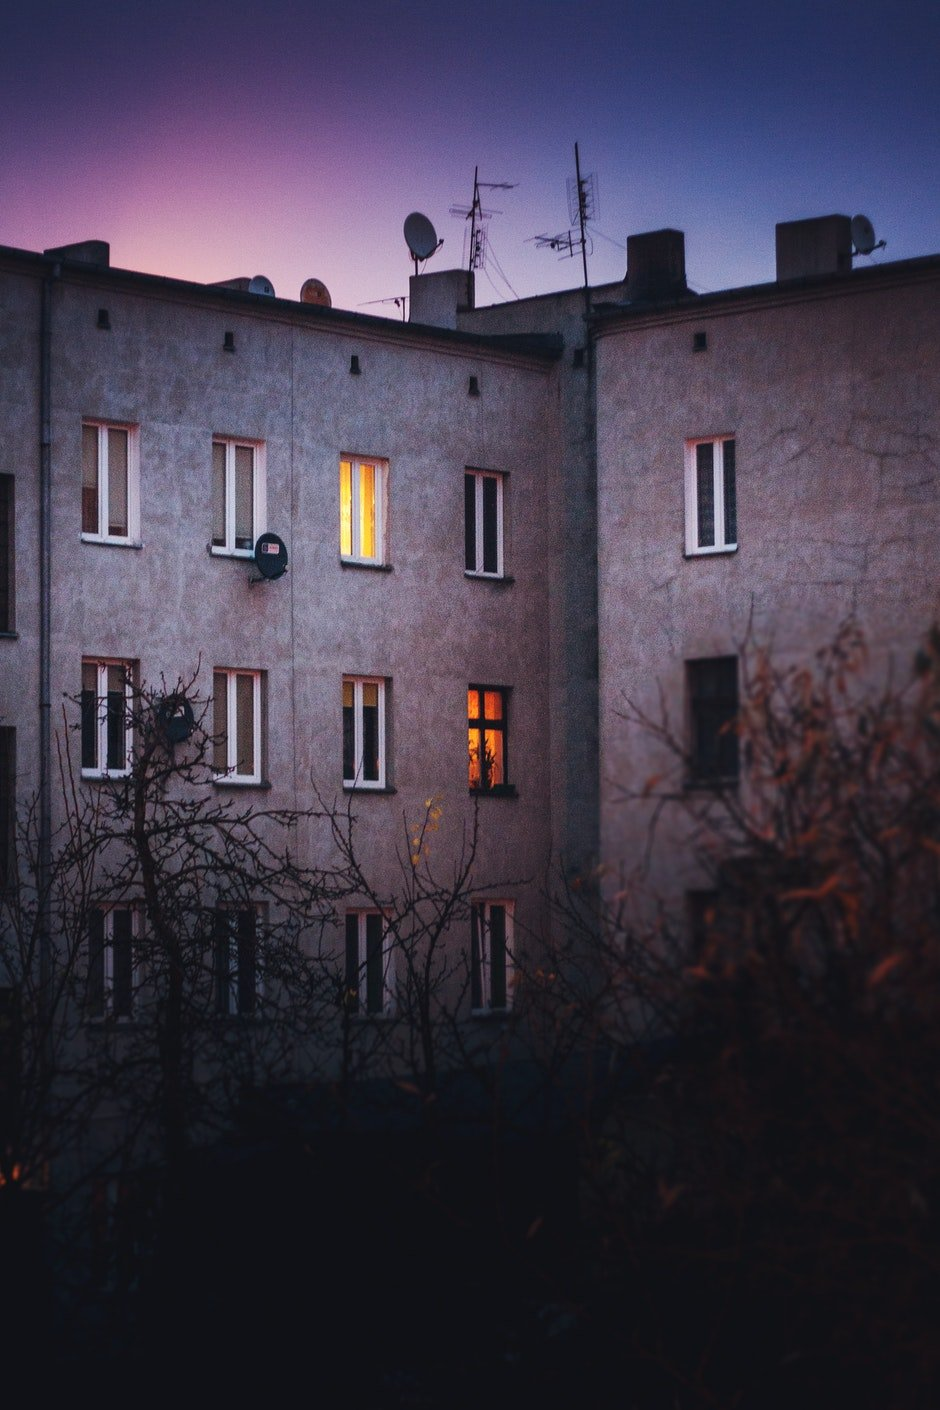 Old tenement house